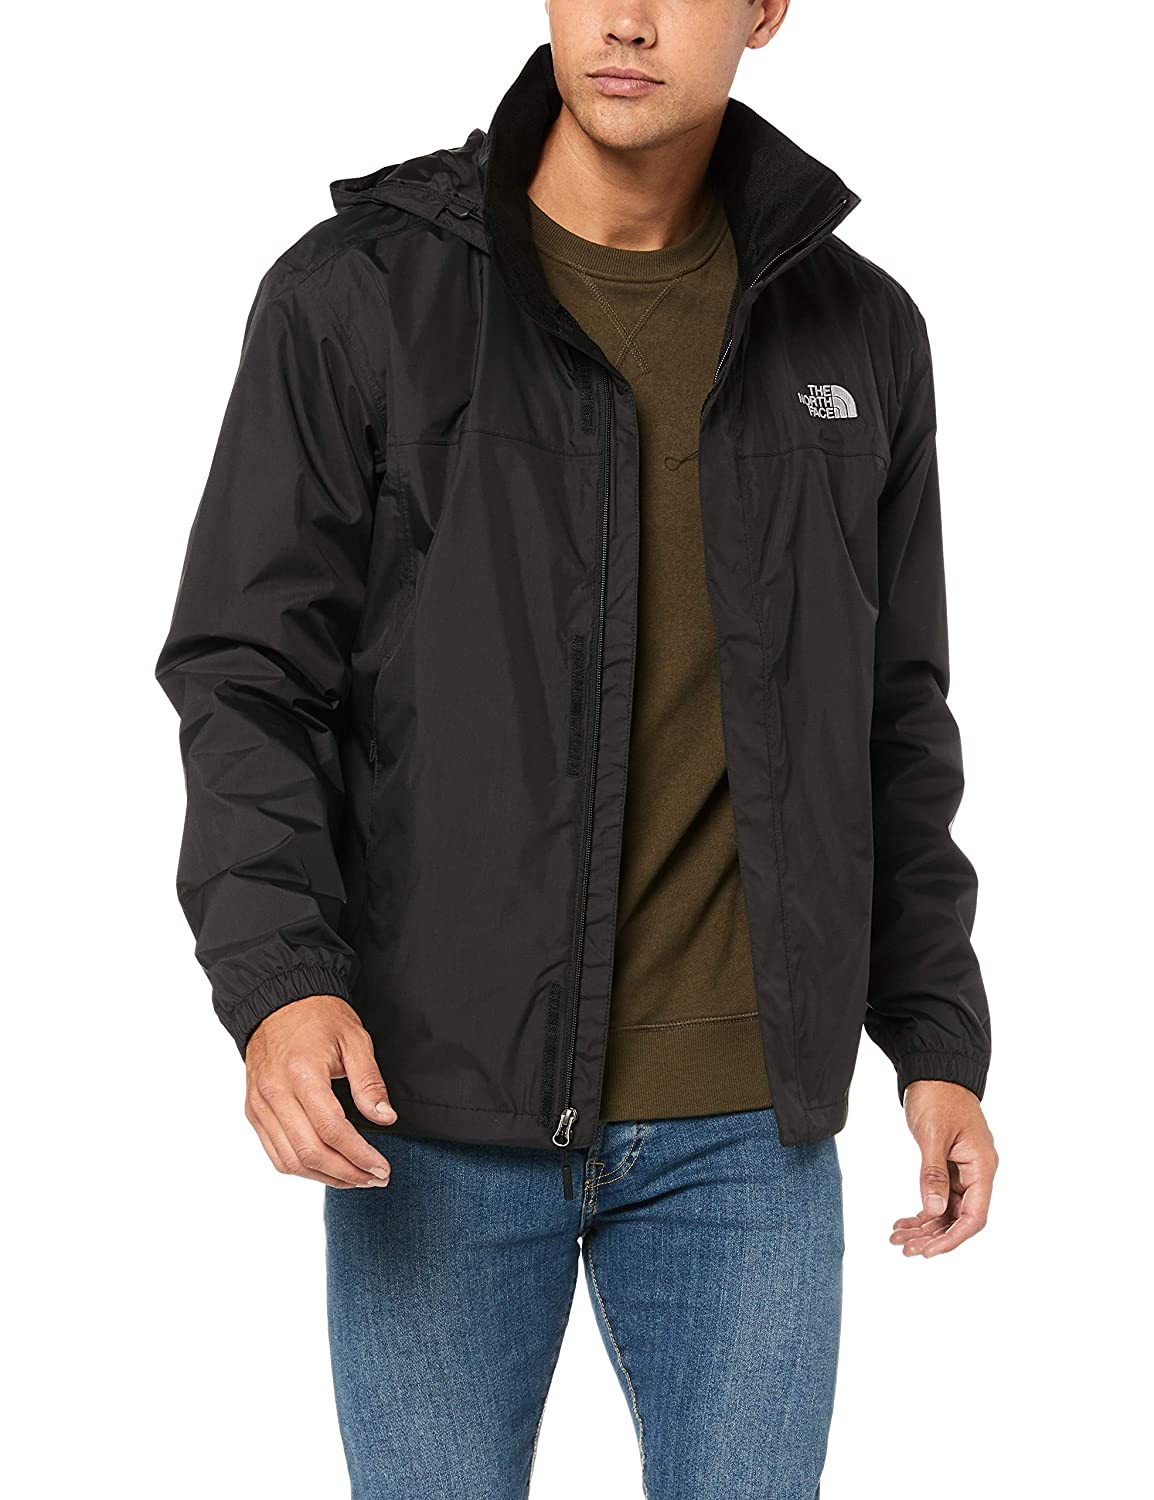 9d97ddd9a The North Face Mens Resolve Windbreaker Jacket: Amazon.ca: Sports ...